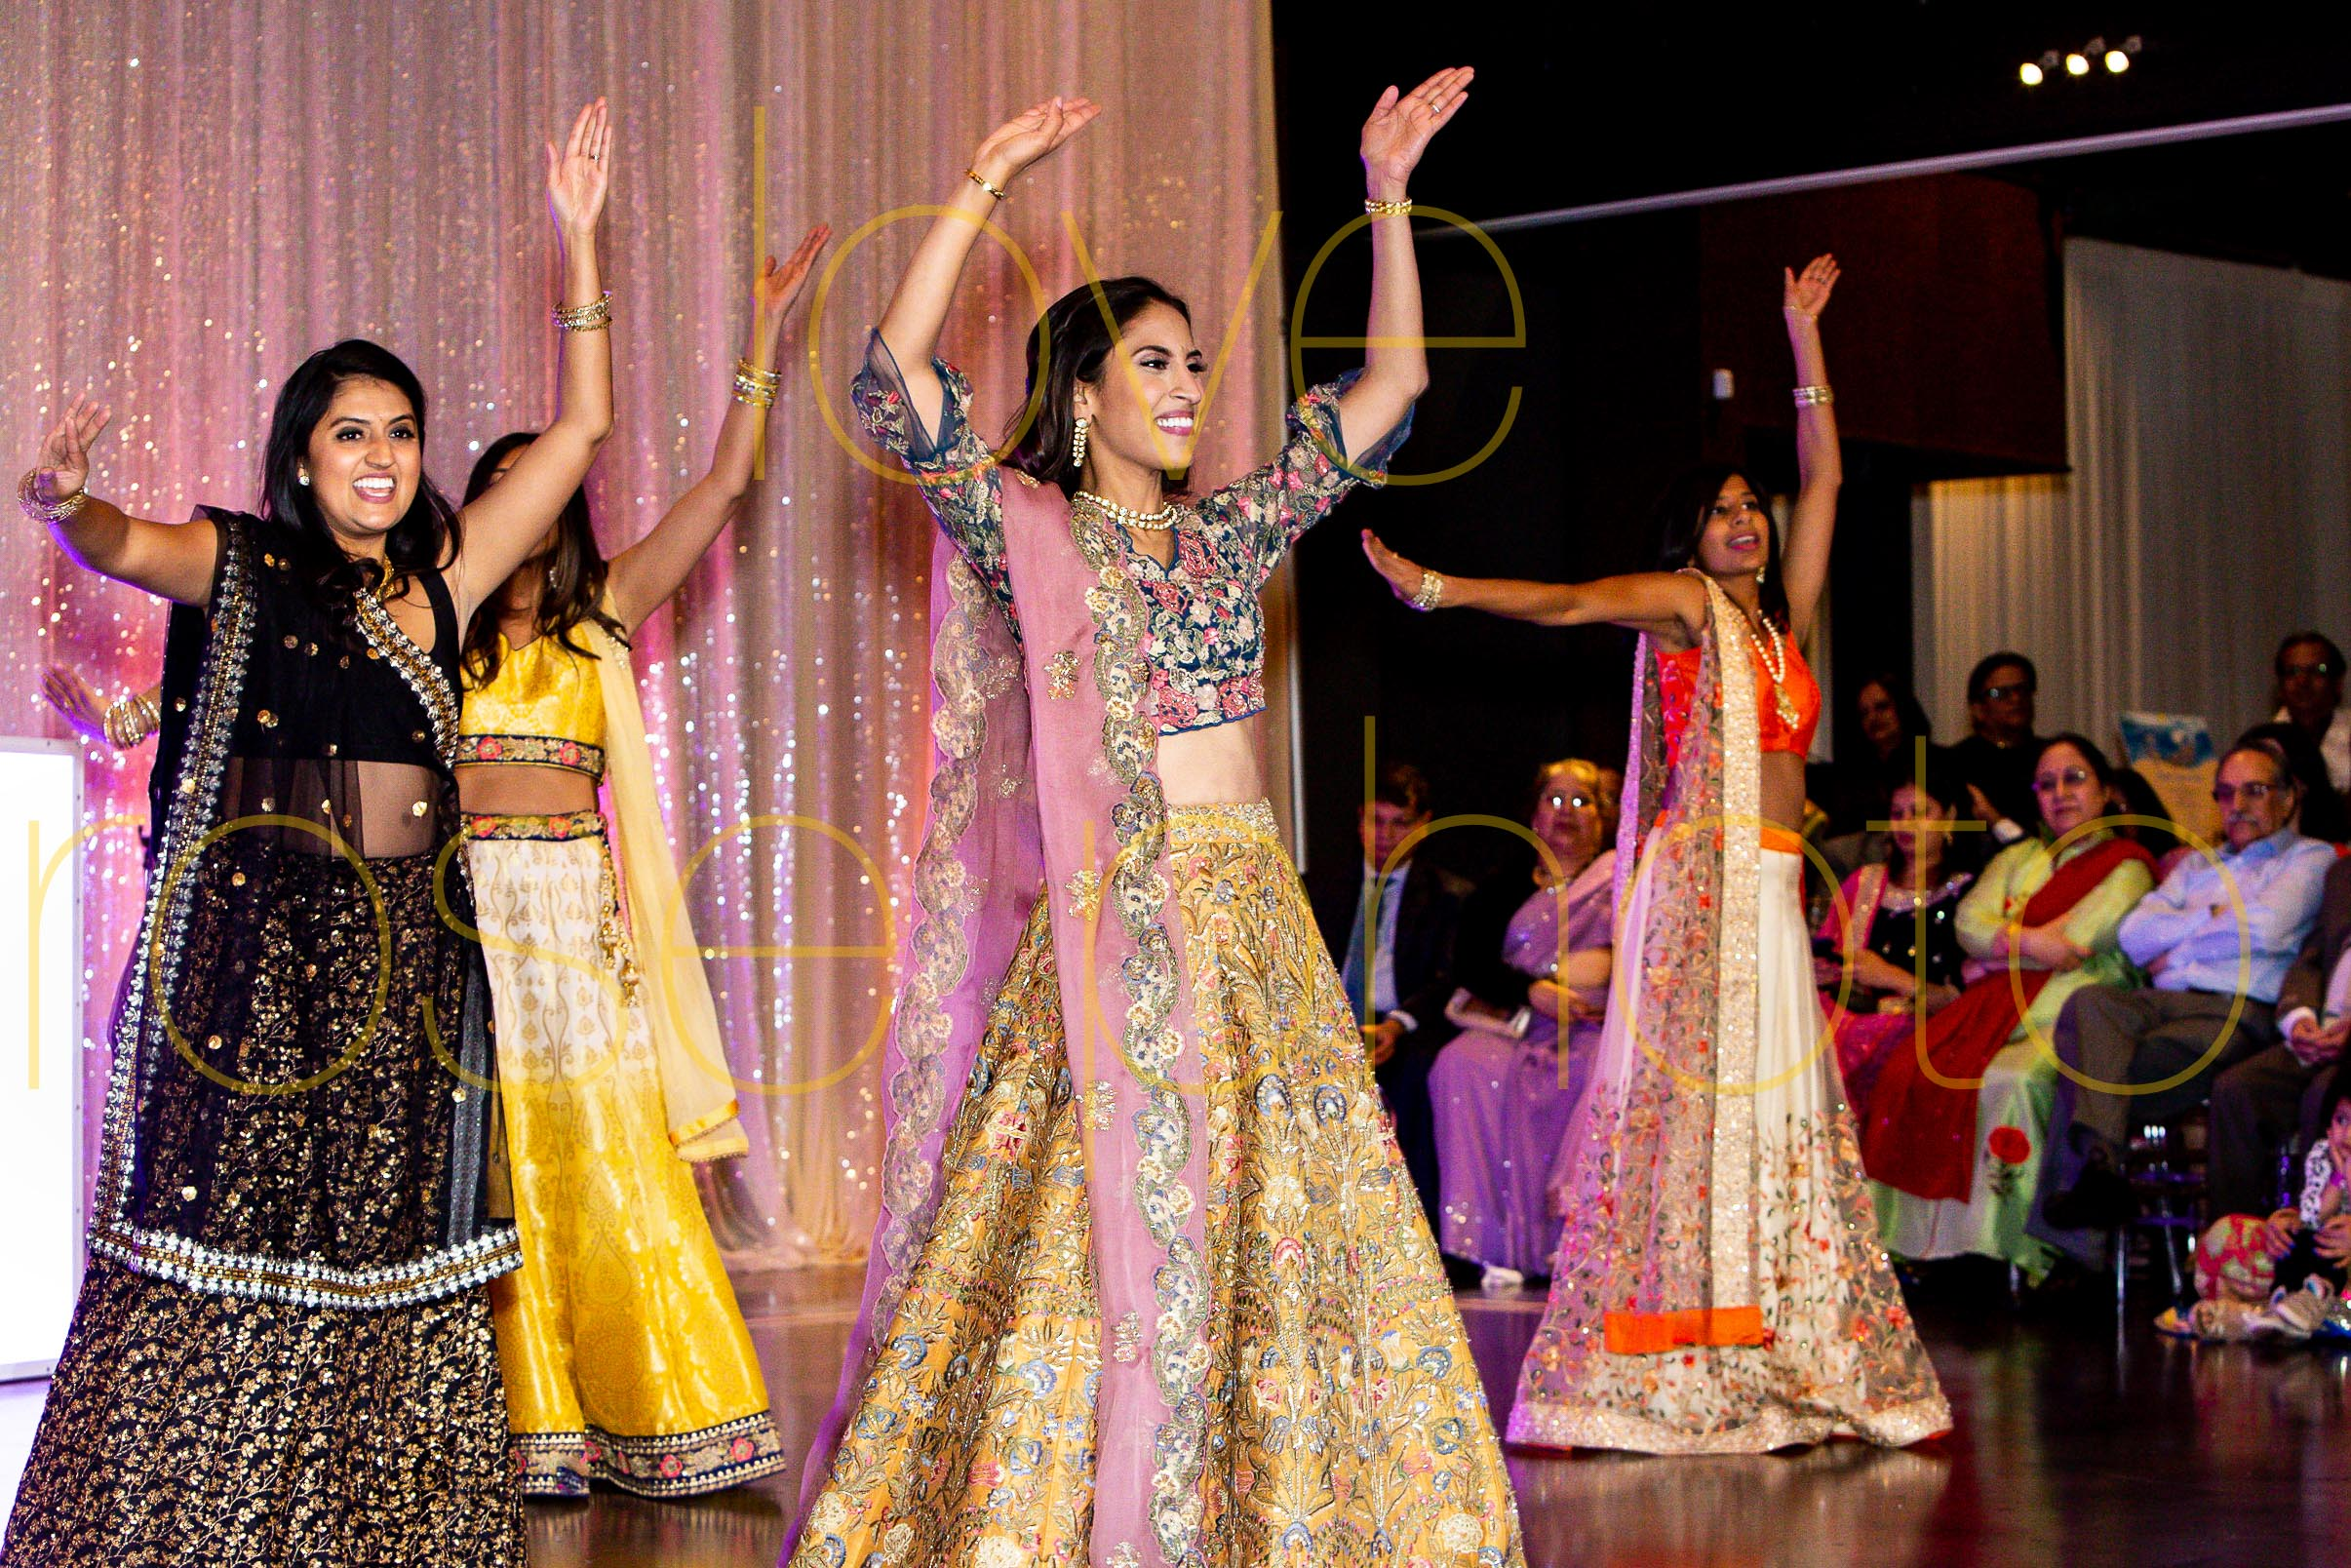 best wedding photographer chicago destination wedding indian bride theater on the lake sangeet -6.jpg